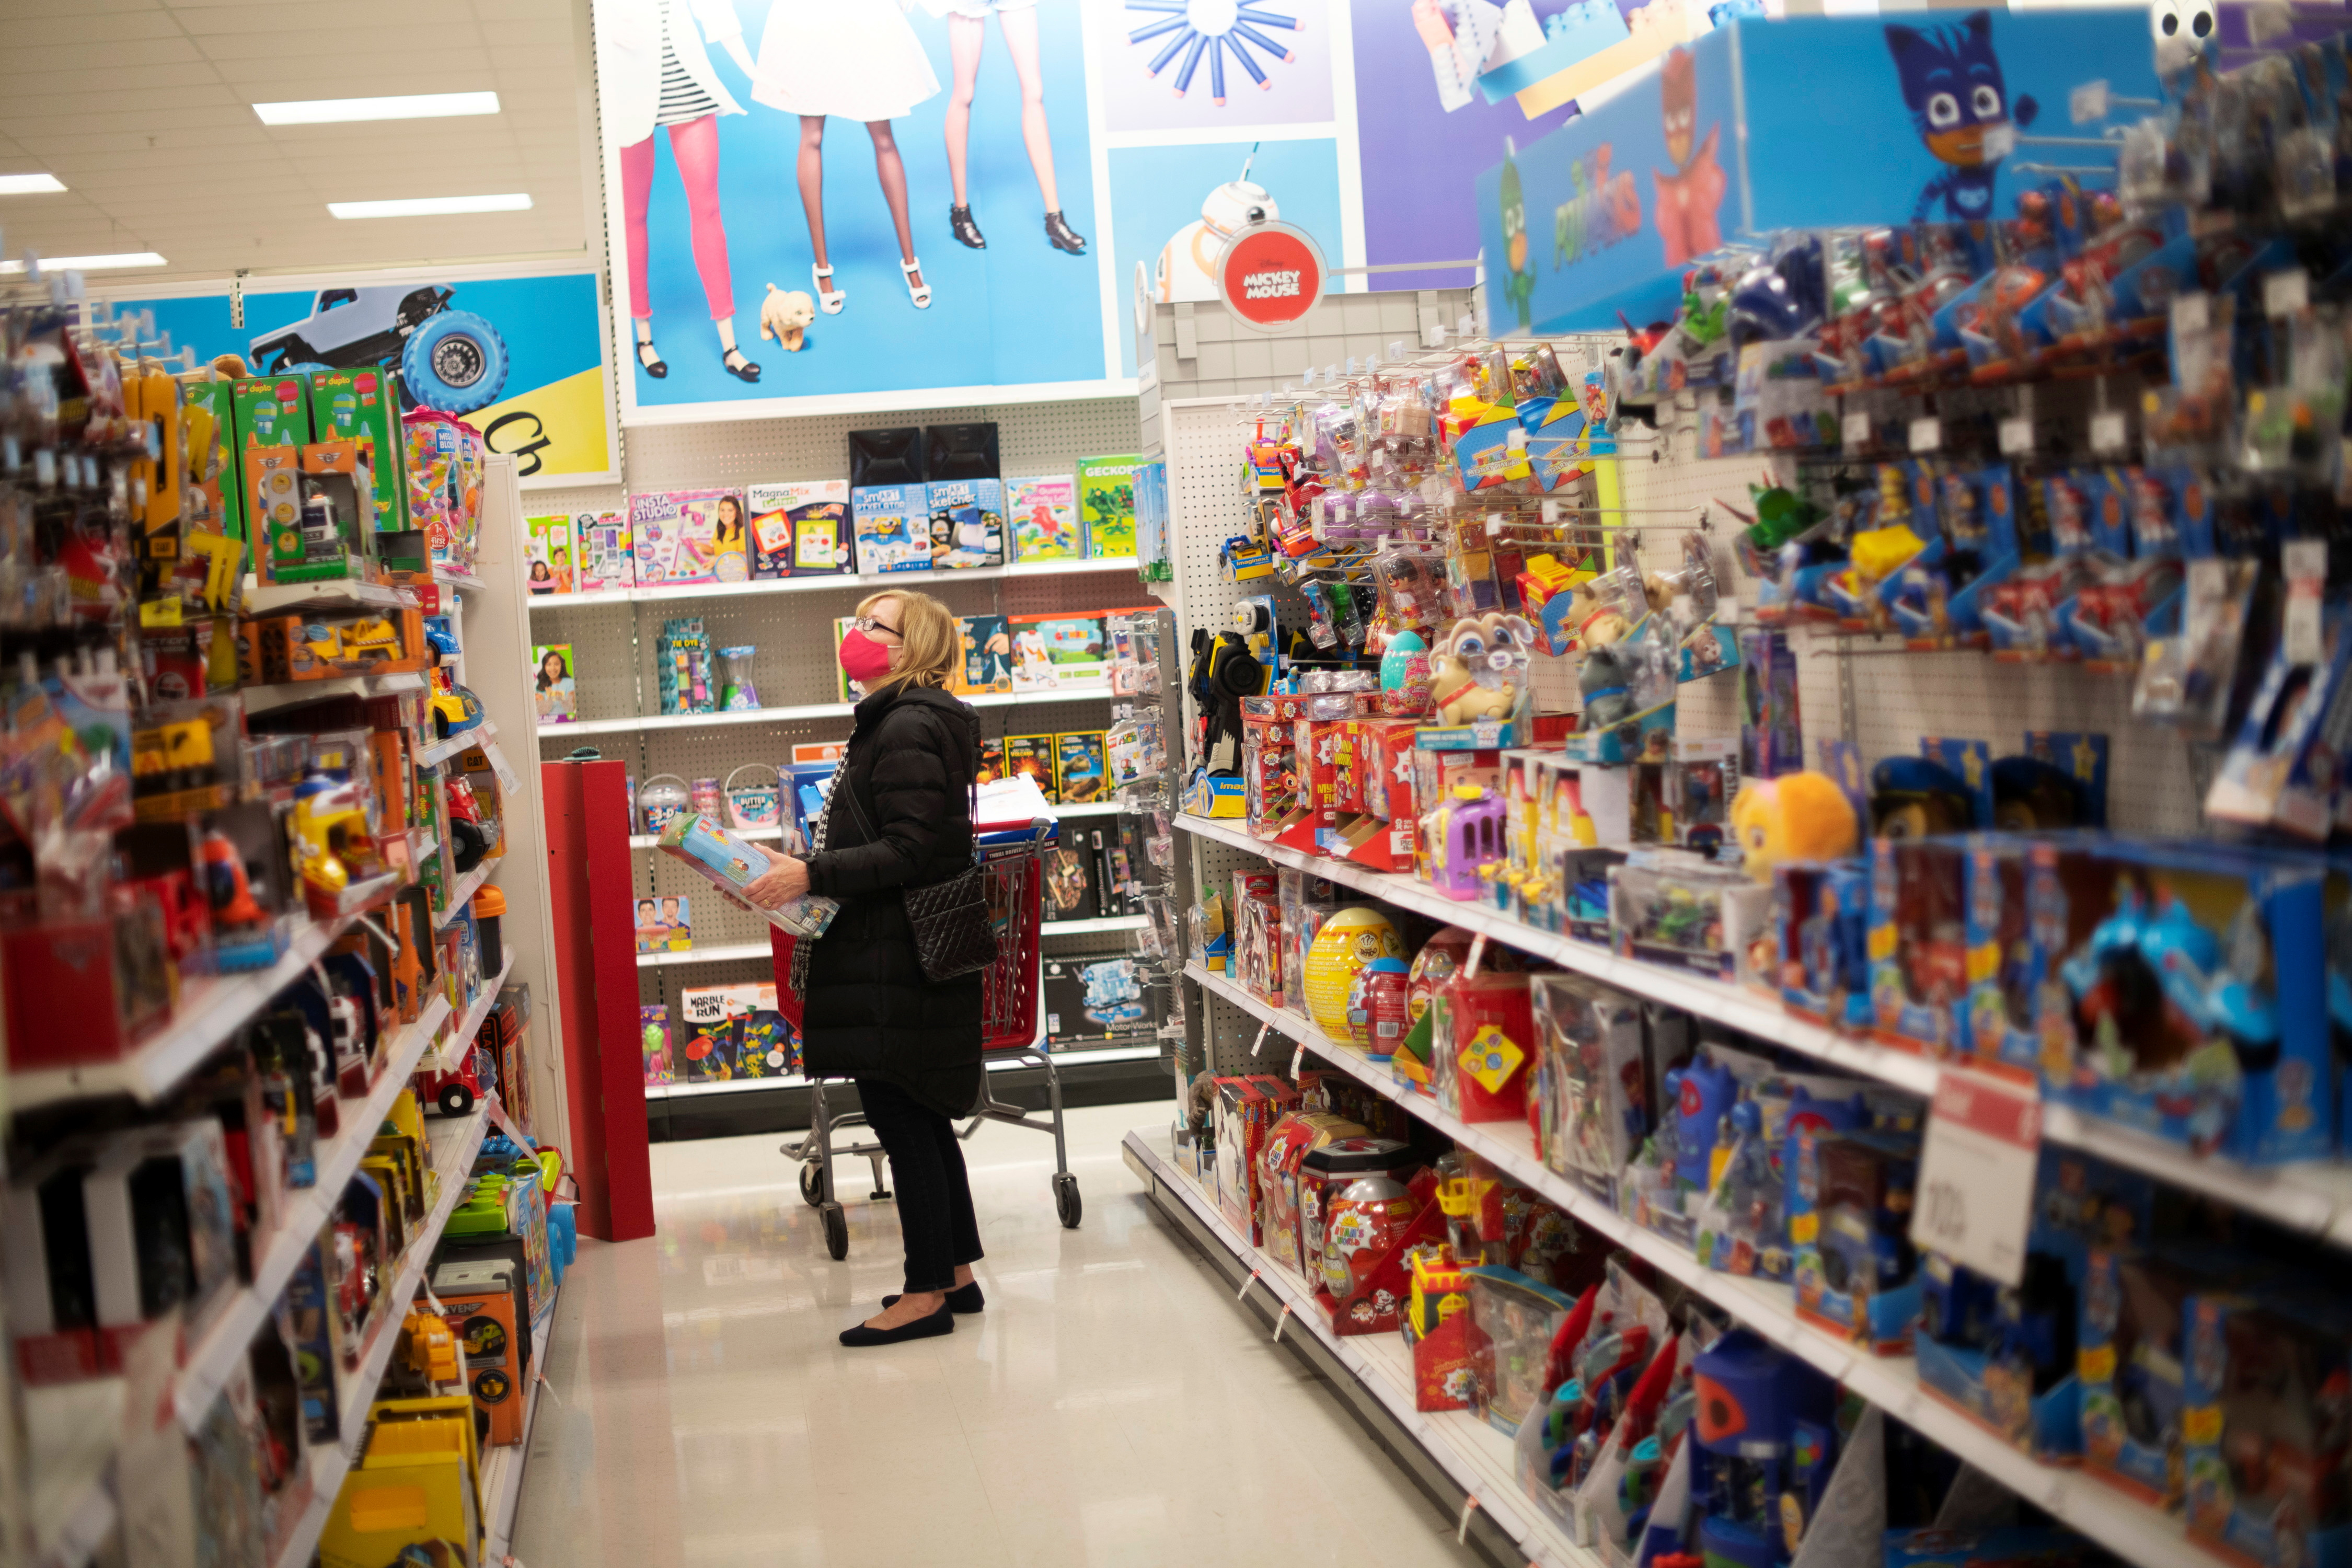 A shopper wearing a face mask due to the coronavirus disease (COVID-19) pandemic browses toys at a Target store in King of Prussia, Pennsylvania U.S. November 20, 2020. REUTERS/Mark Makela/Files